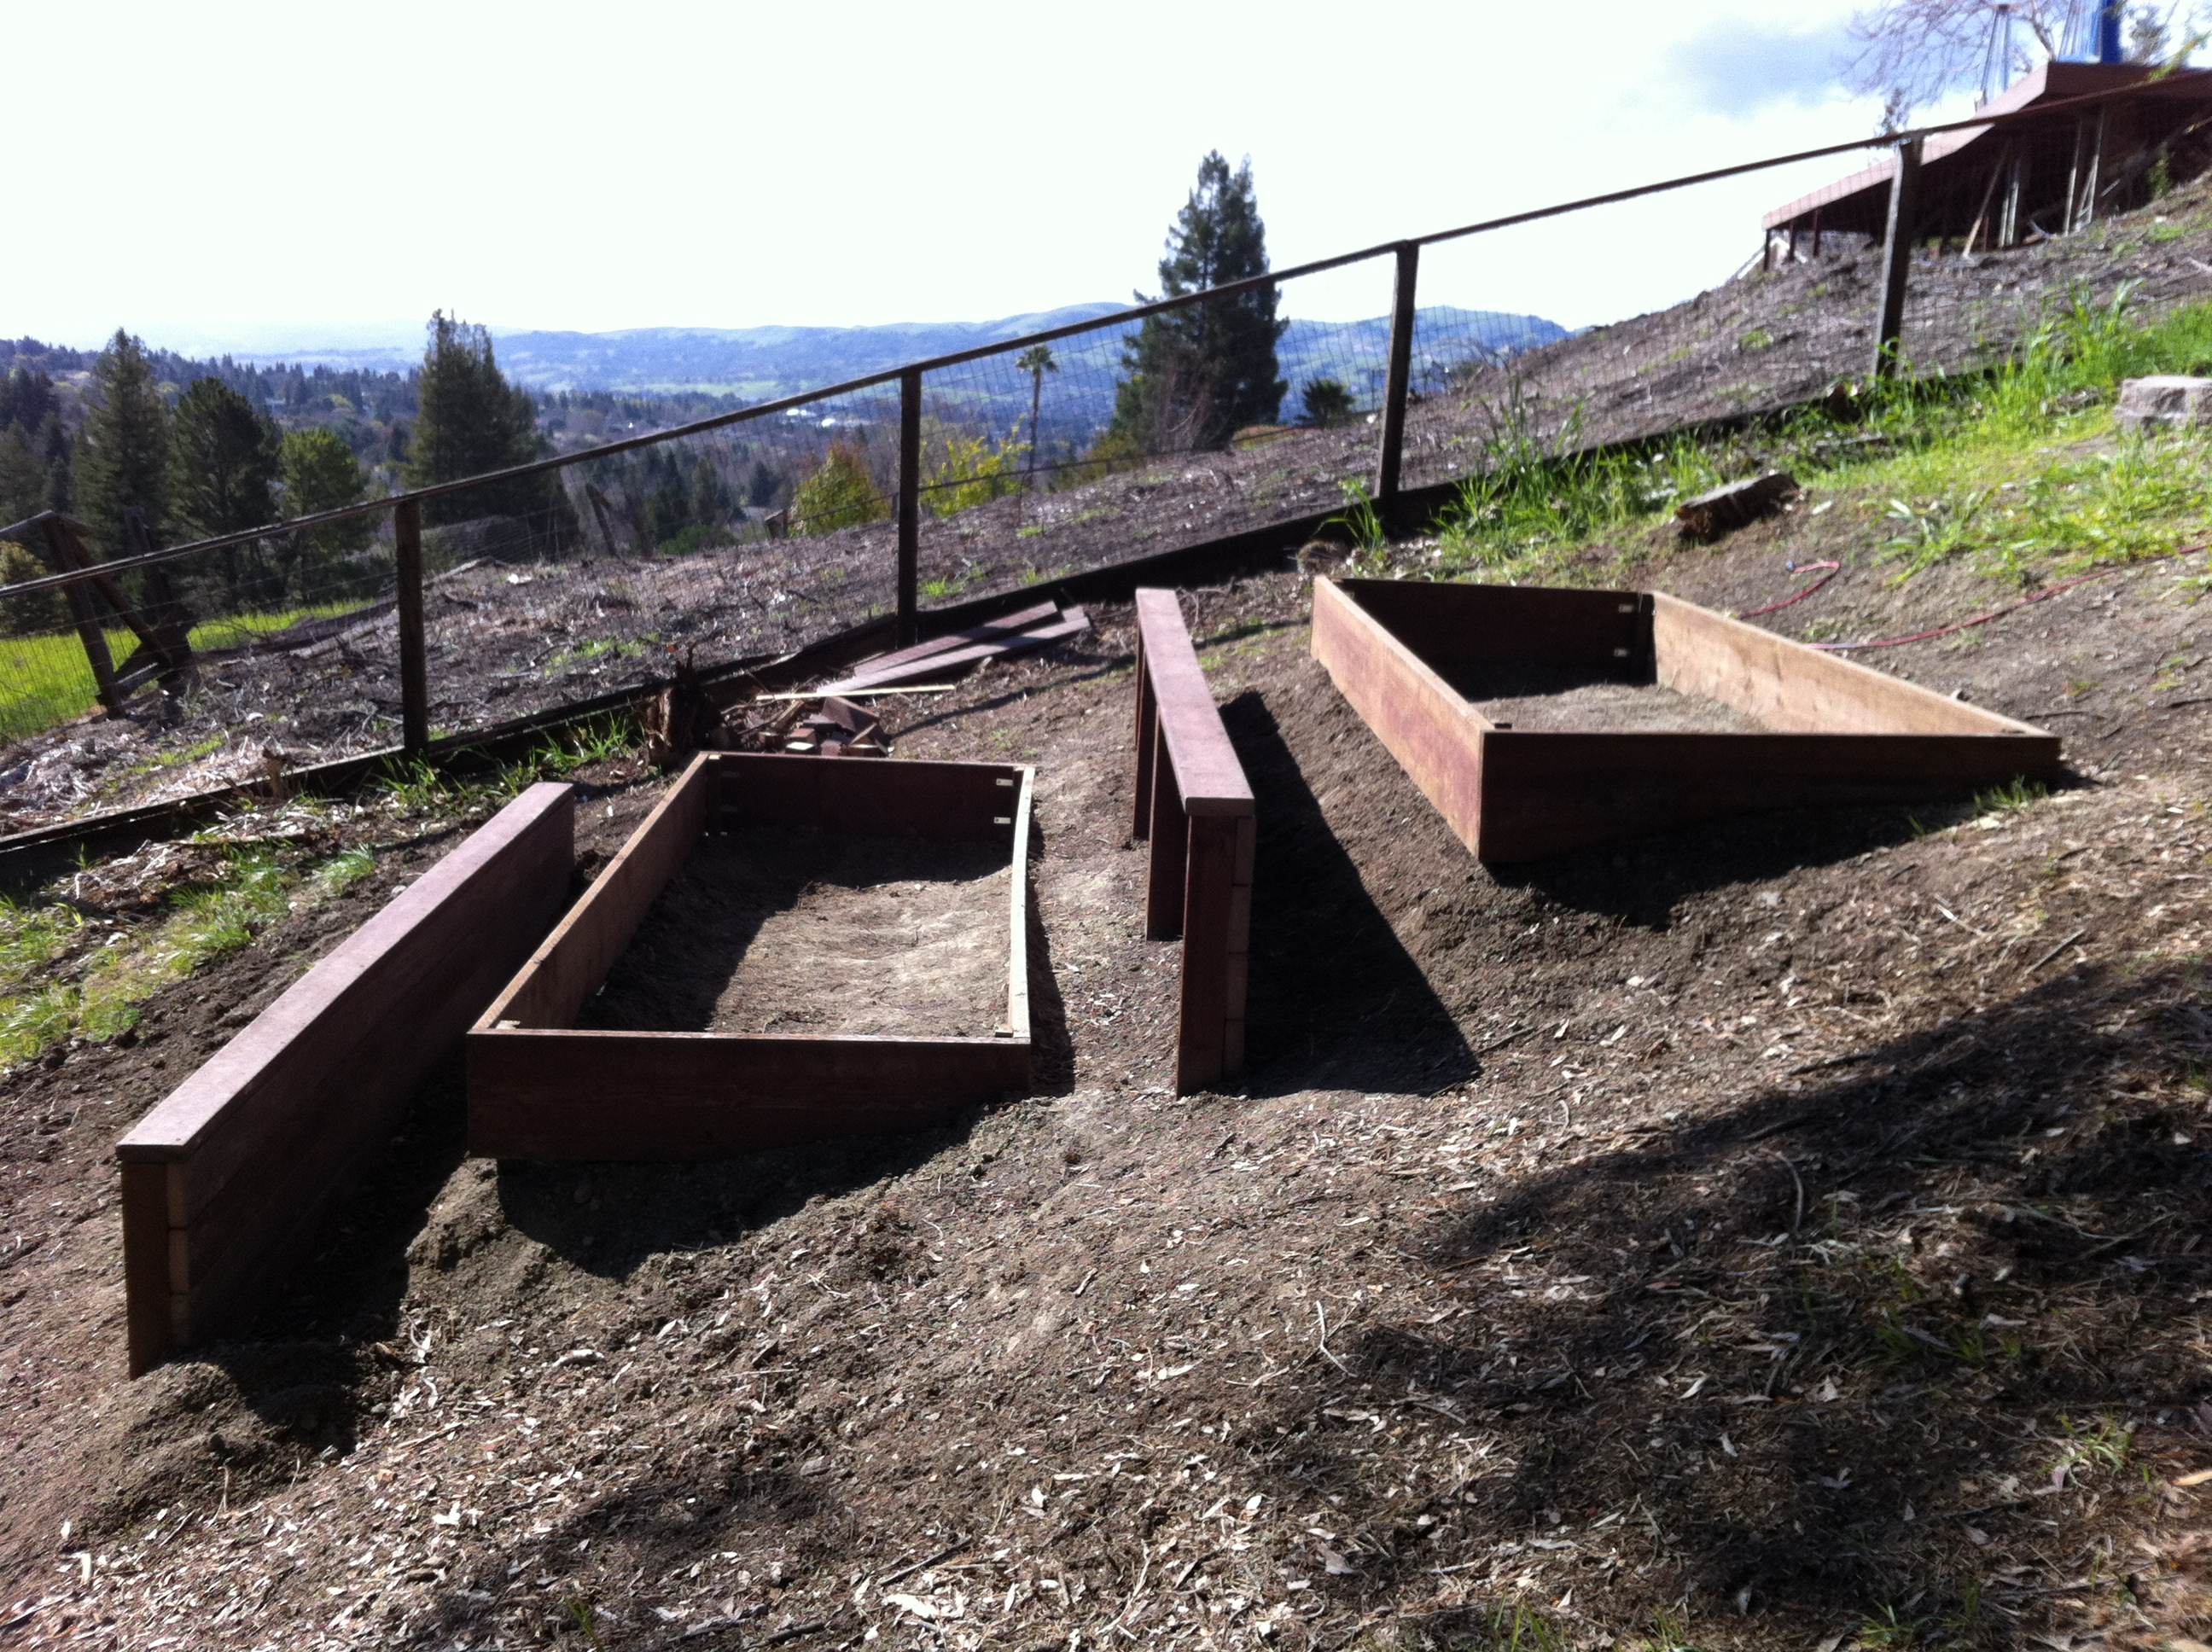 the steep slope, I needed to build two (unanticipated) retaining walls